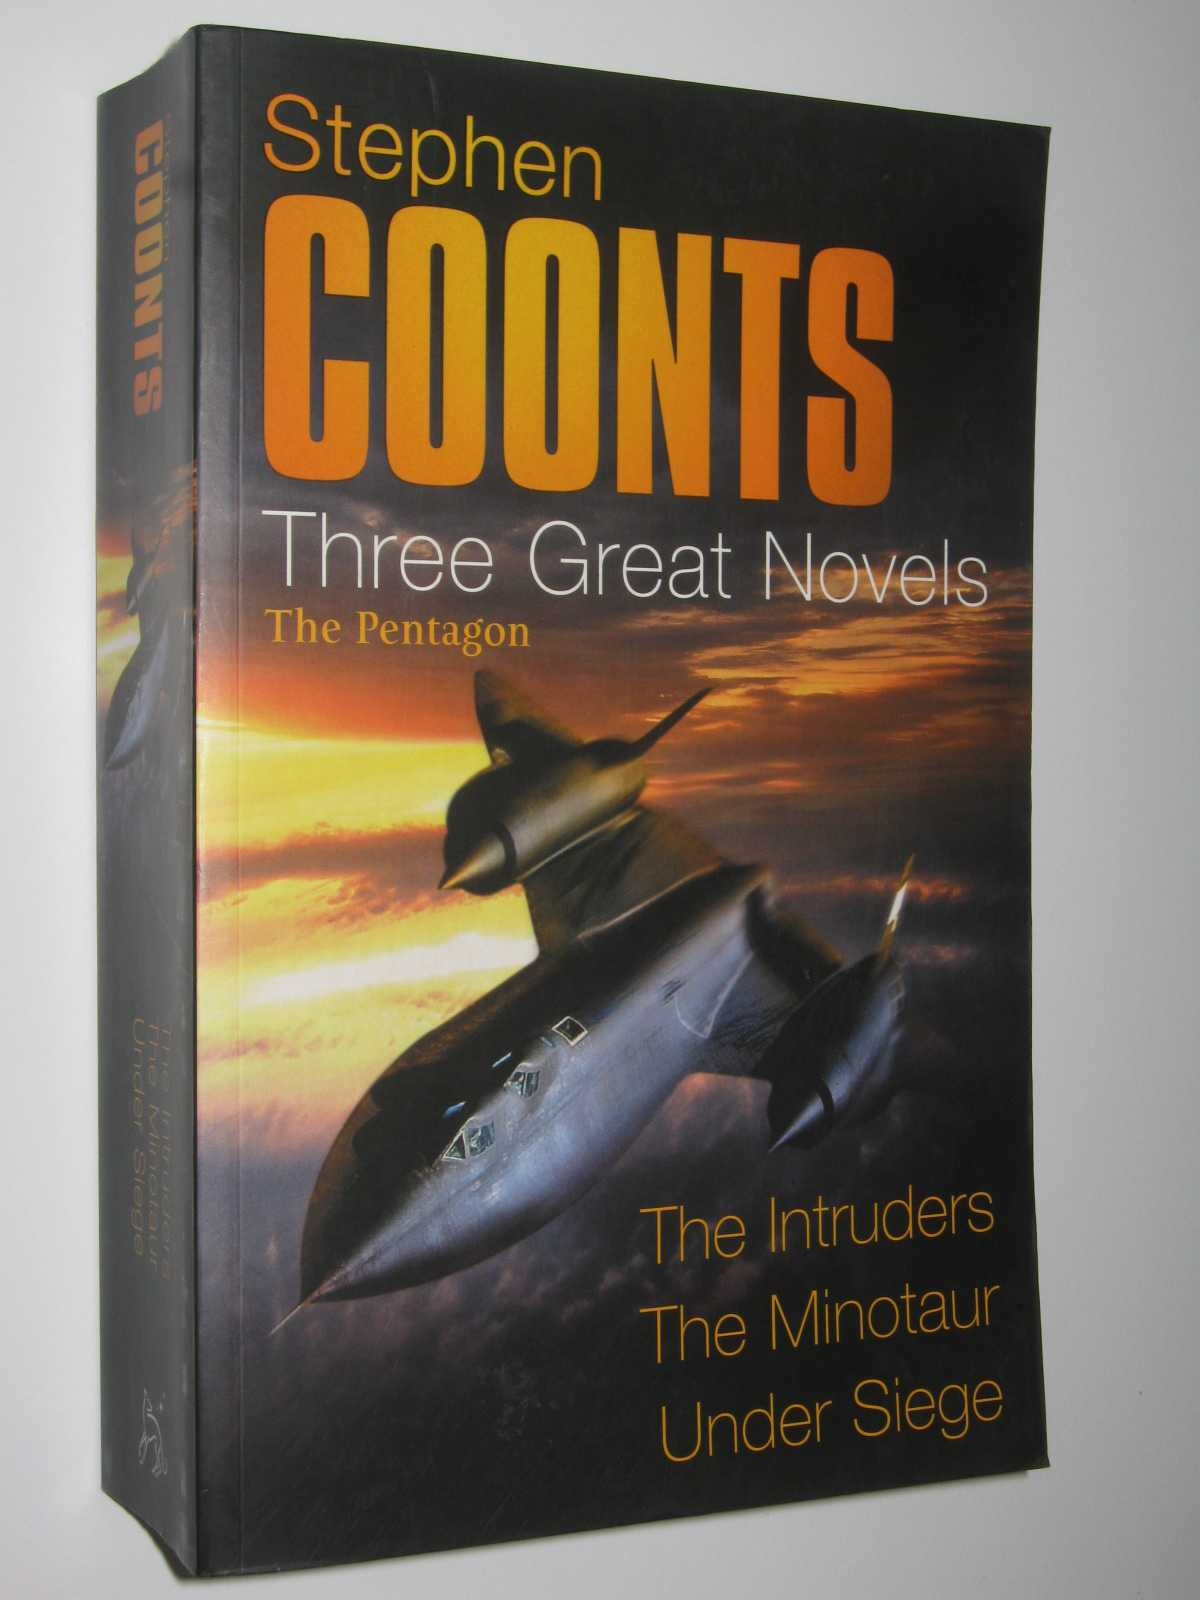 Image for Three Great Novels : The Intruders + The Minotaur + Under Siege